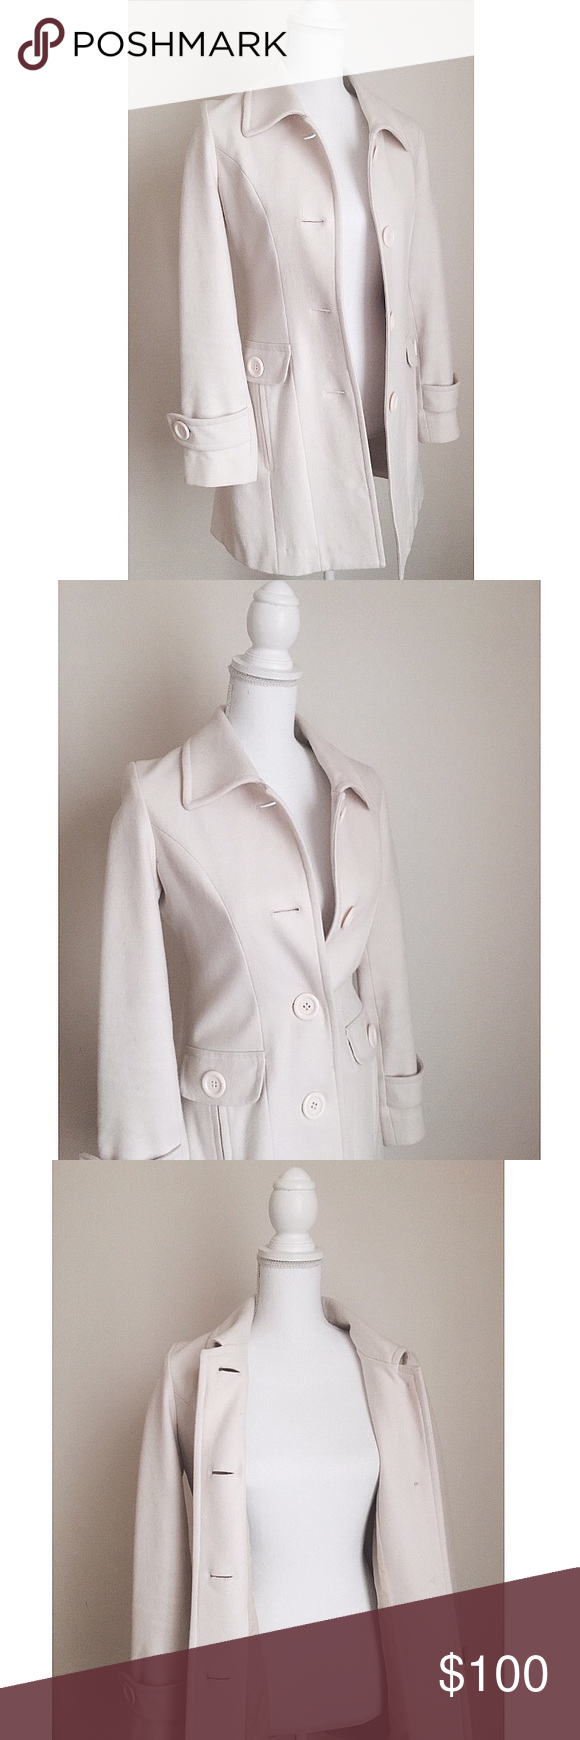 Ivory Wool-Blend Trench ✨ Absolutely stunning piece - Wool blended ivory trench - Structured & flattering fit - The most flawless coat I've ever owned ⚜️ Purchased from a local boutique for $225 Jackets & Coats